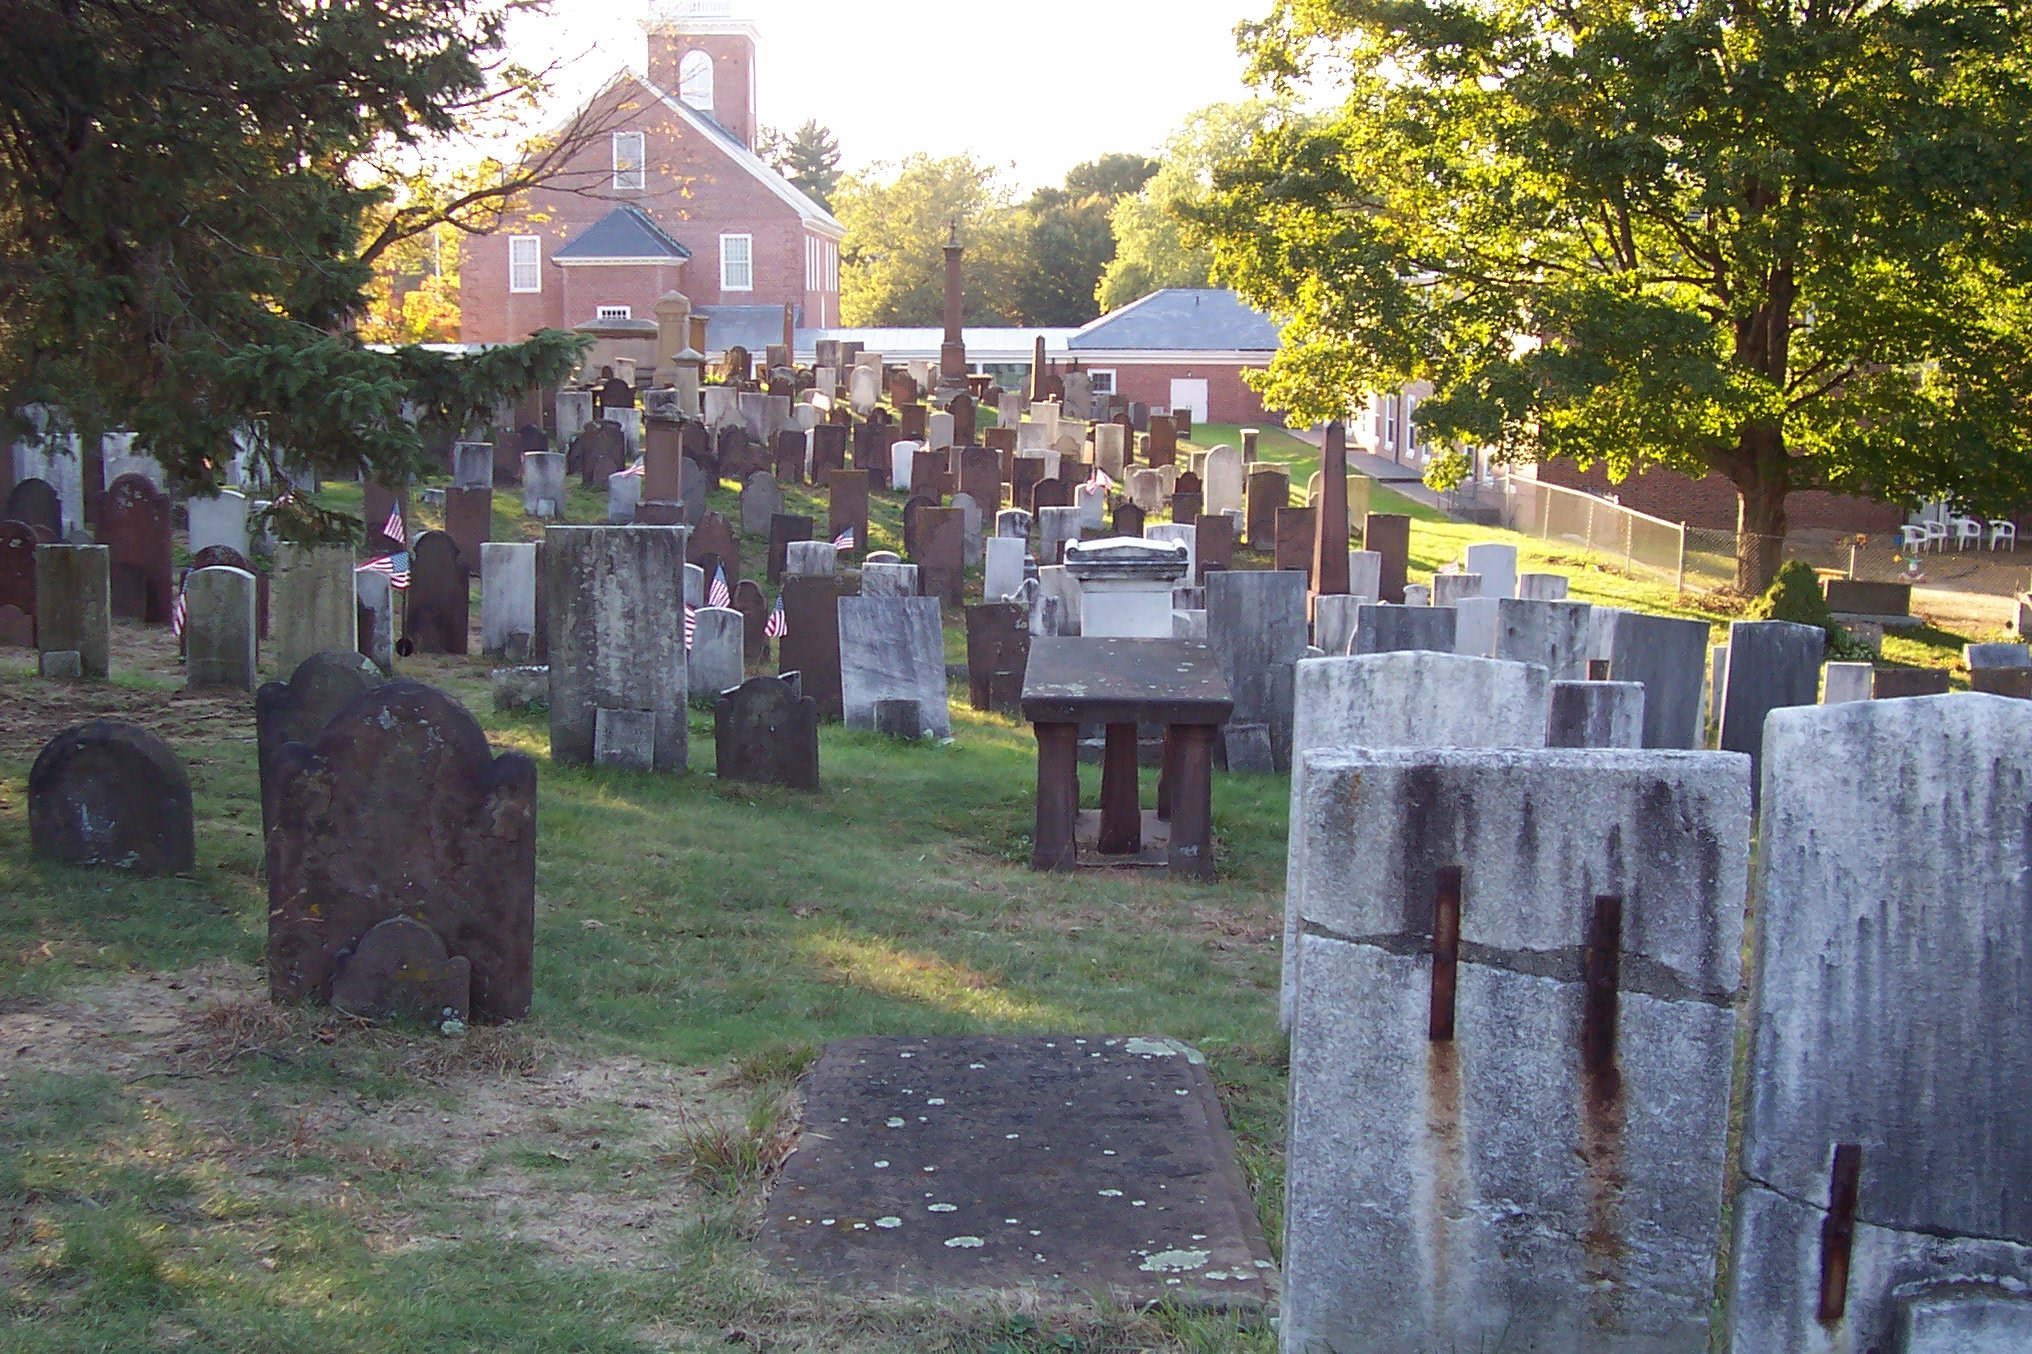 Ancient Burying Grounds at the First Church of Christ (in Hartford).